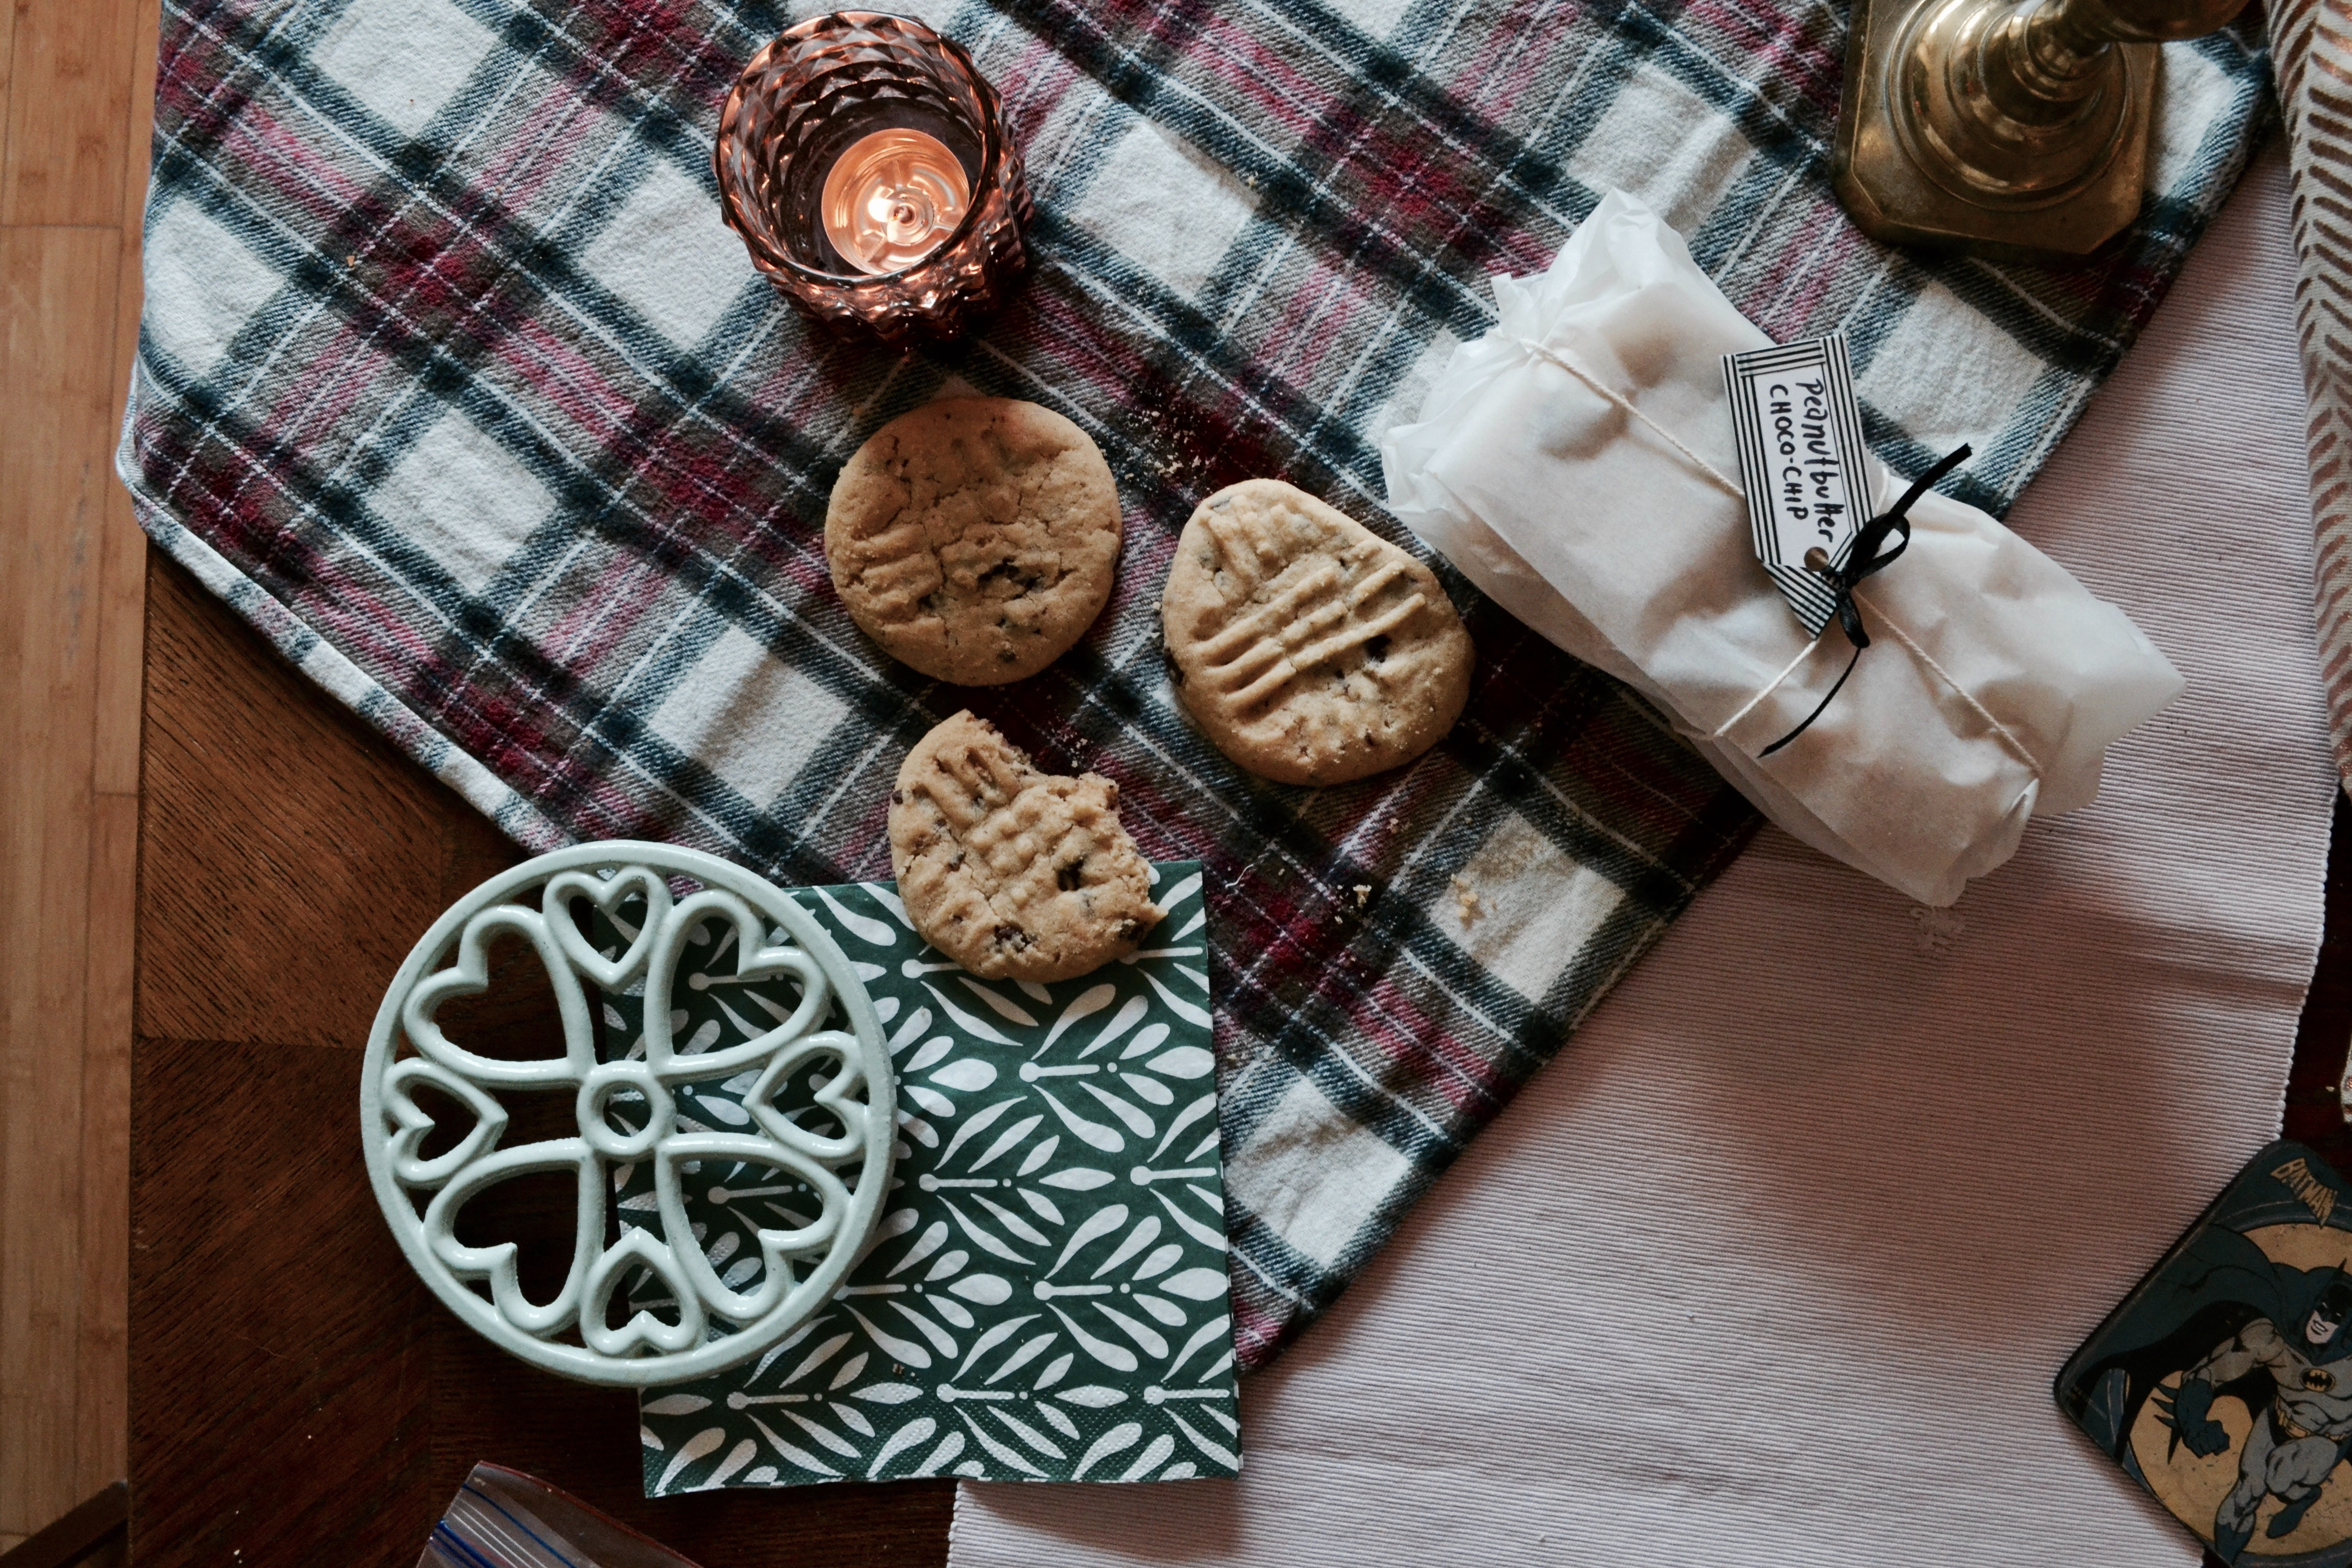 Cookies on a plaid mat photo